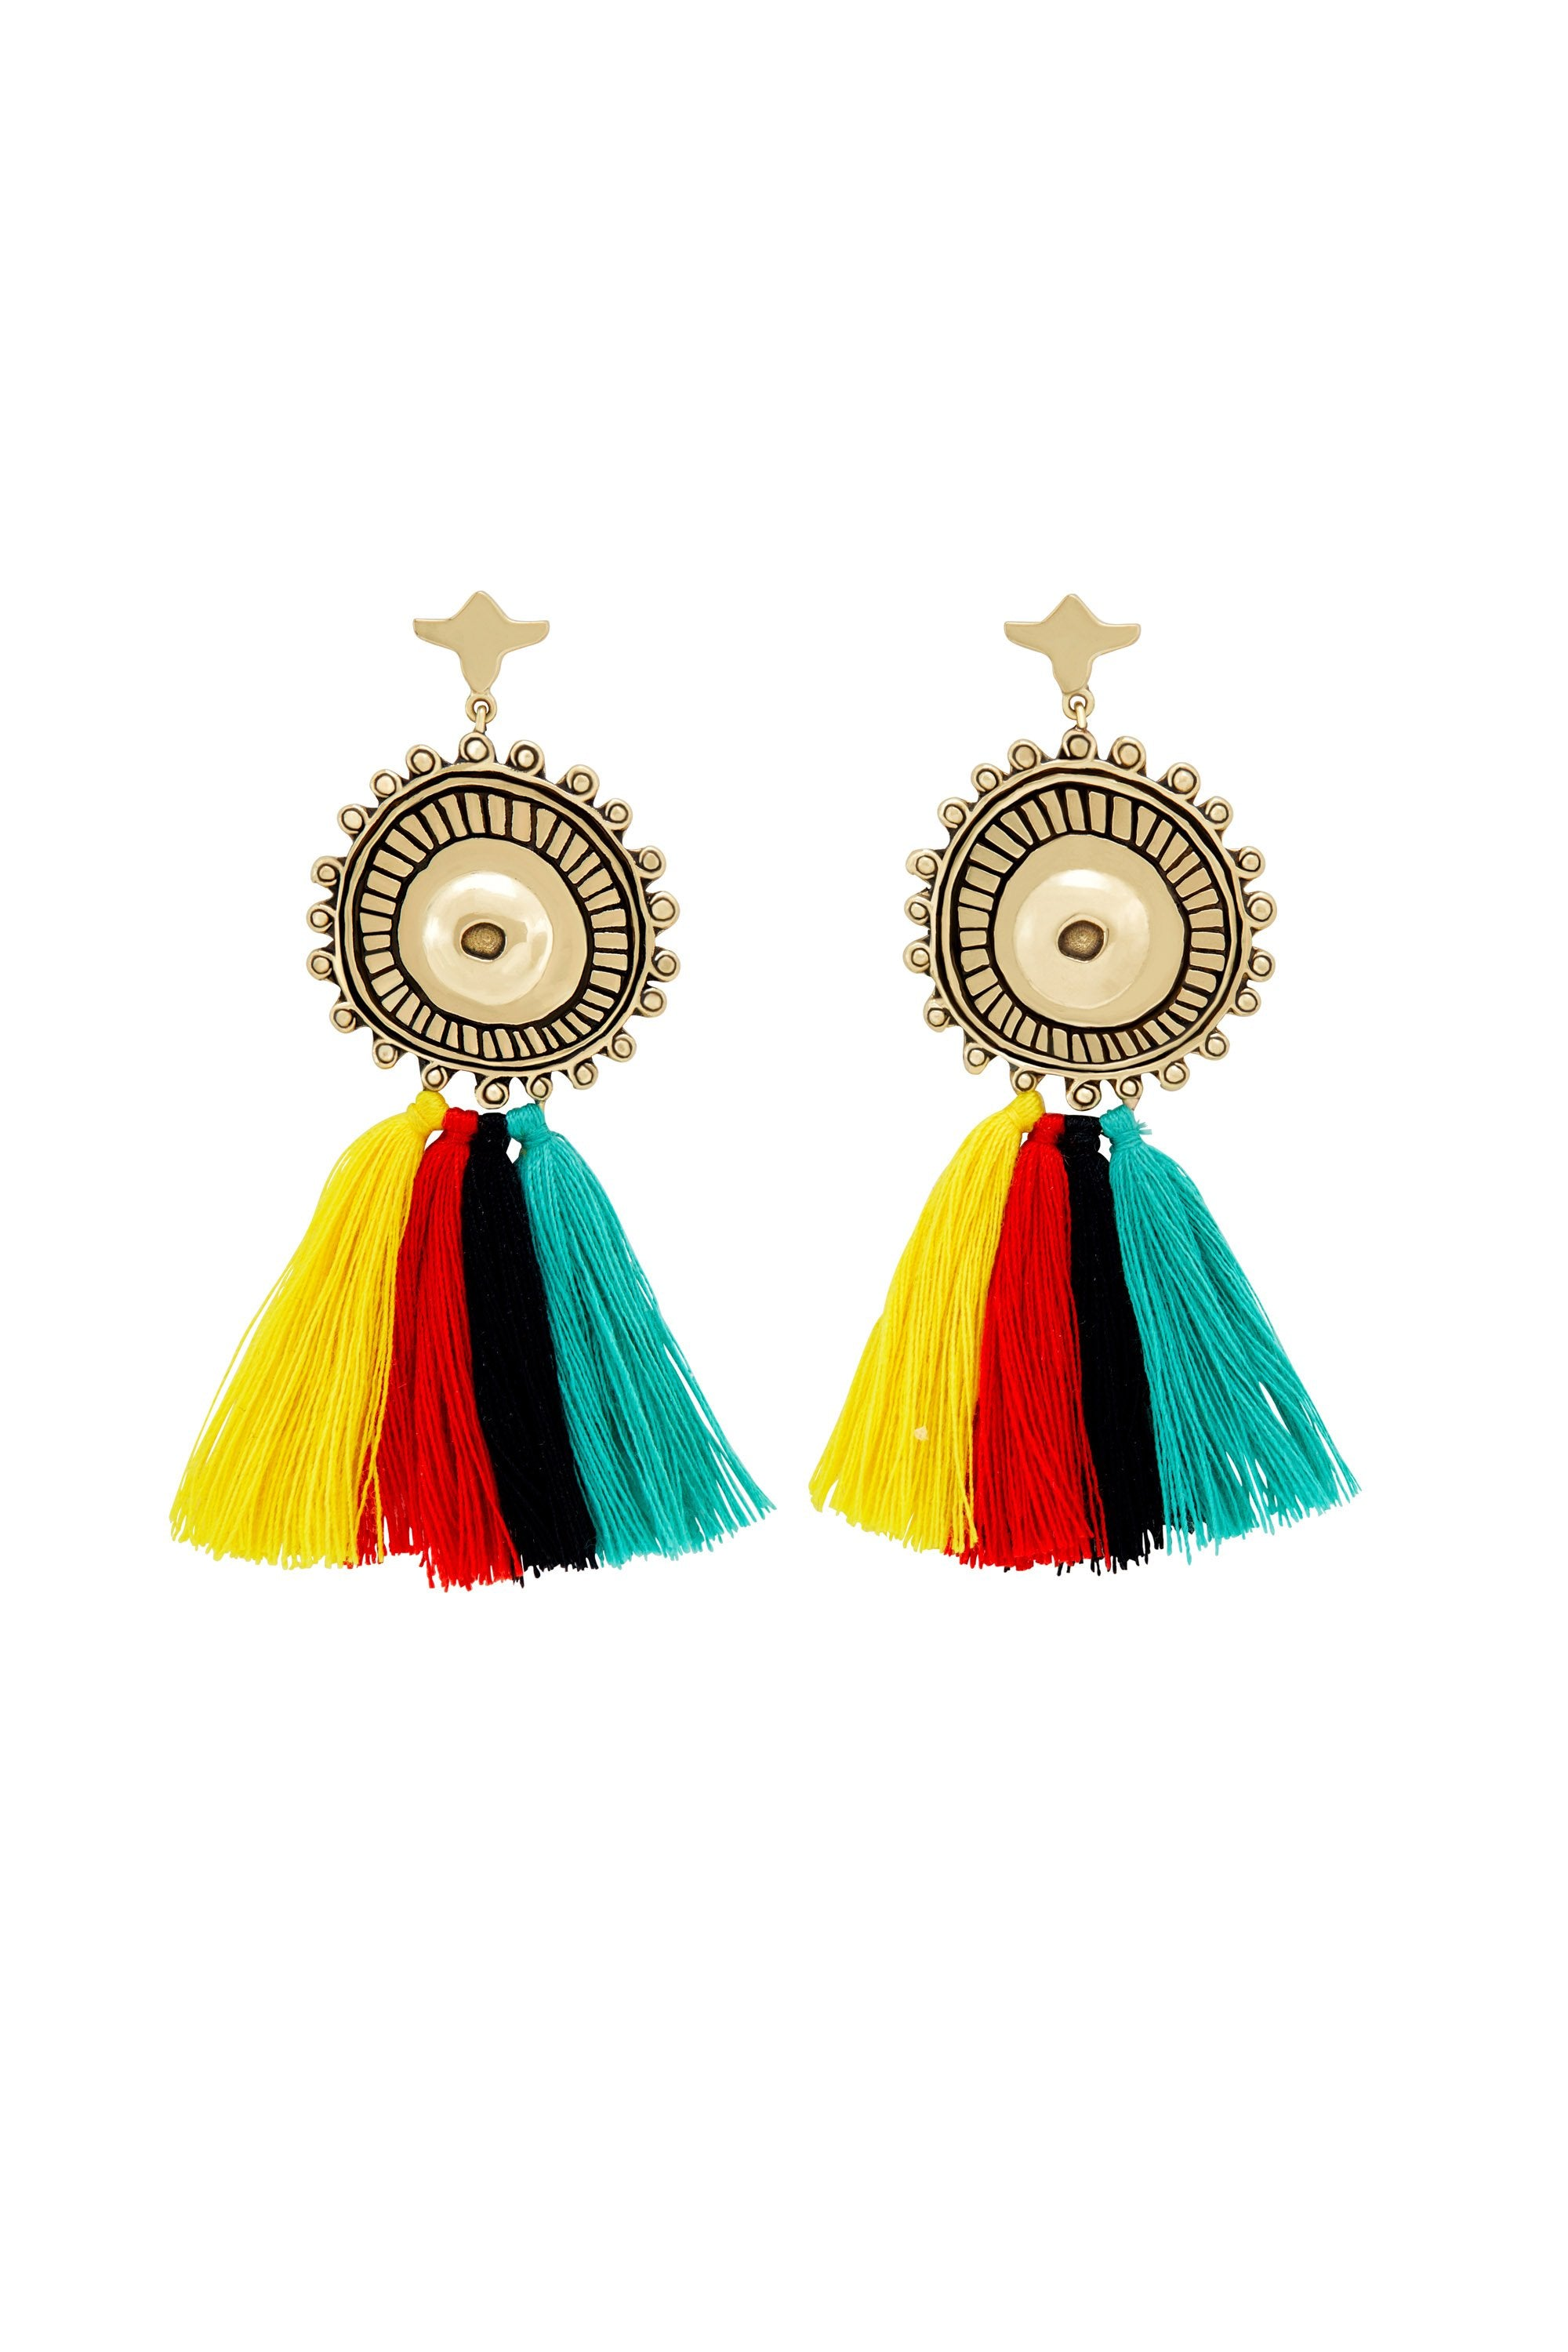 GOLD BRASS TUTTI FRUITTI EARRINGS